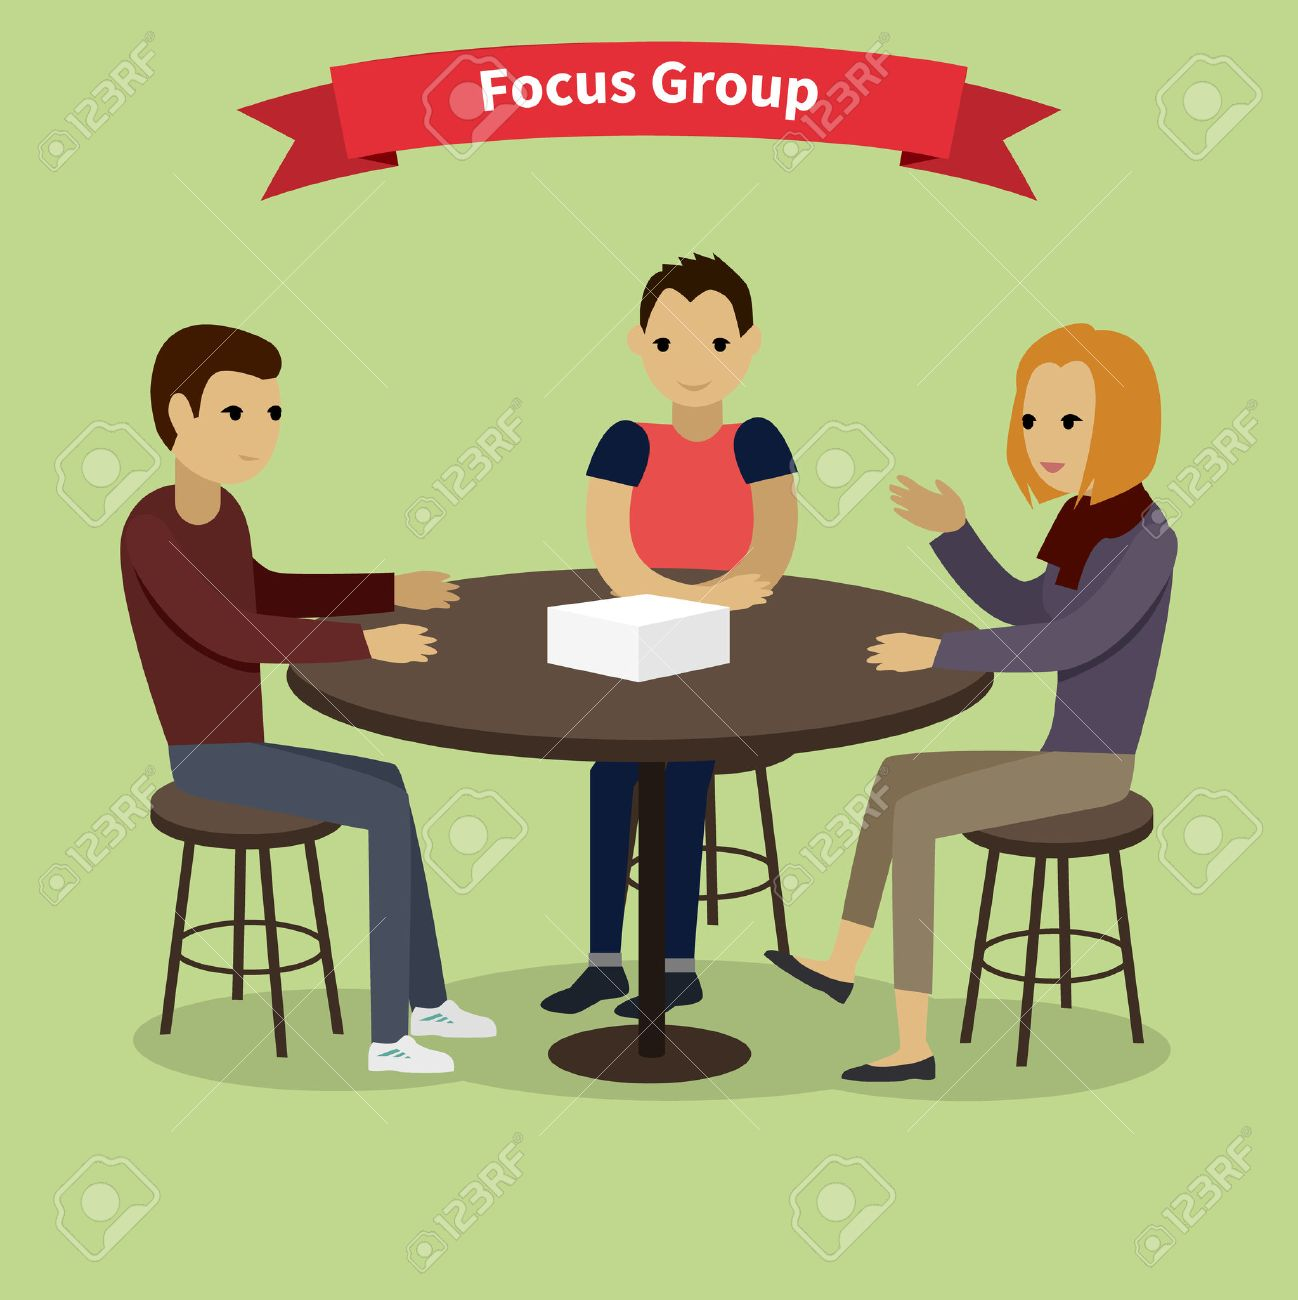 Focus group target audience at aim. Market research, focus, group discussion, survey, research, focus concept, interview. Group of people sitting at the table. Focus group concept. Focus group team - 50867705